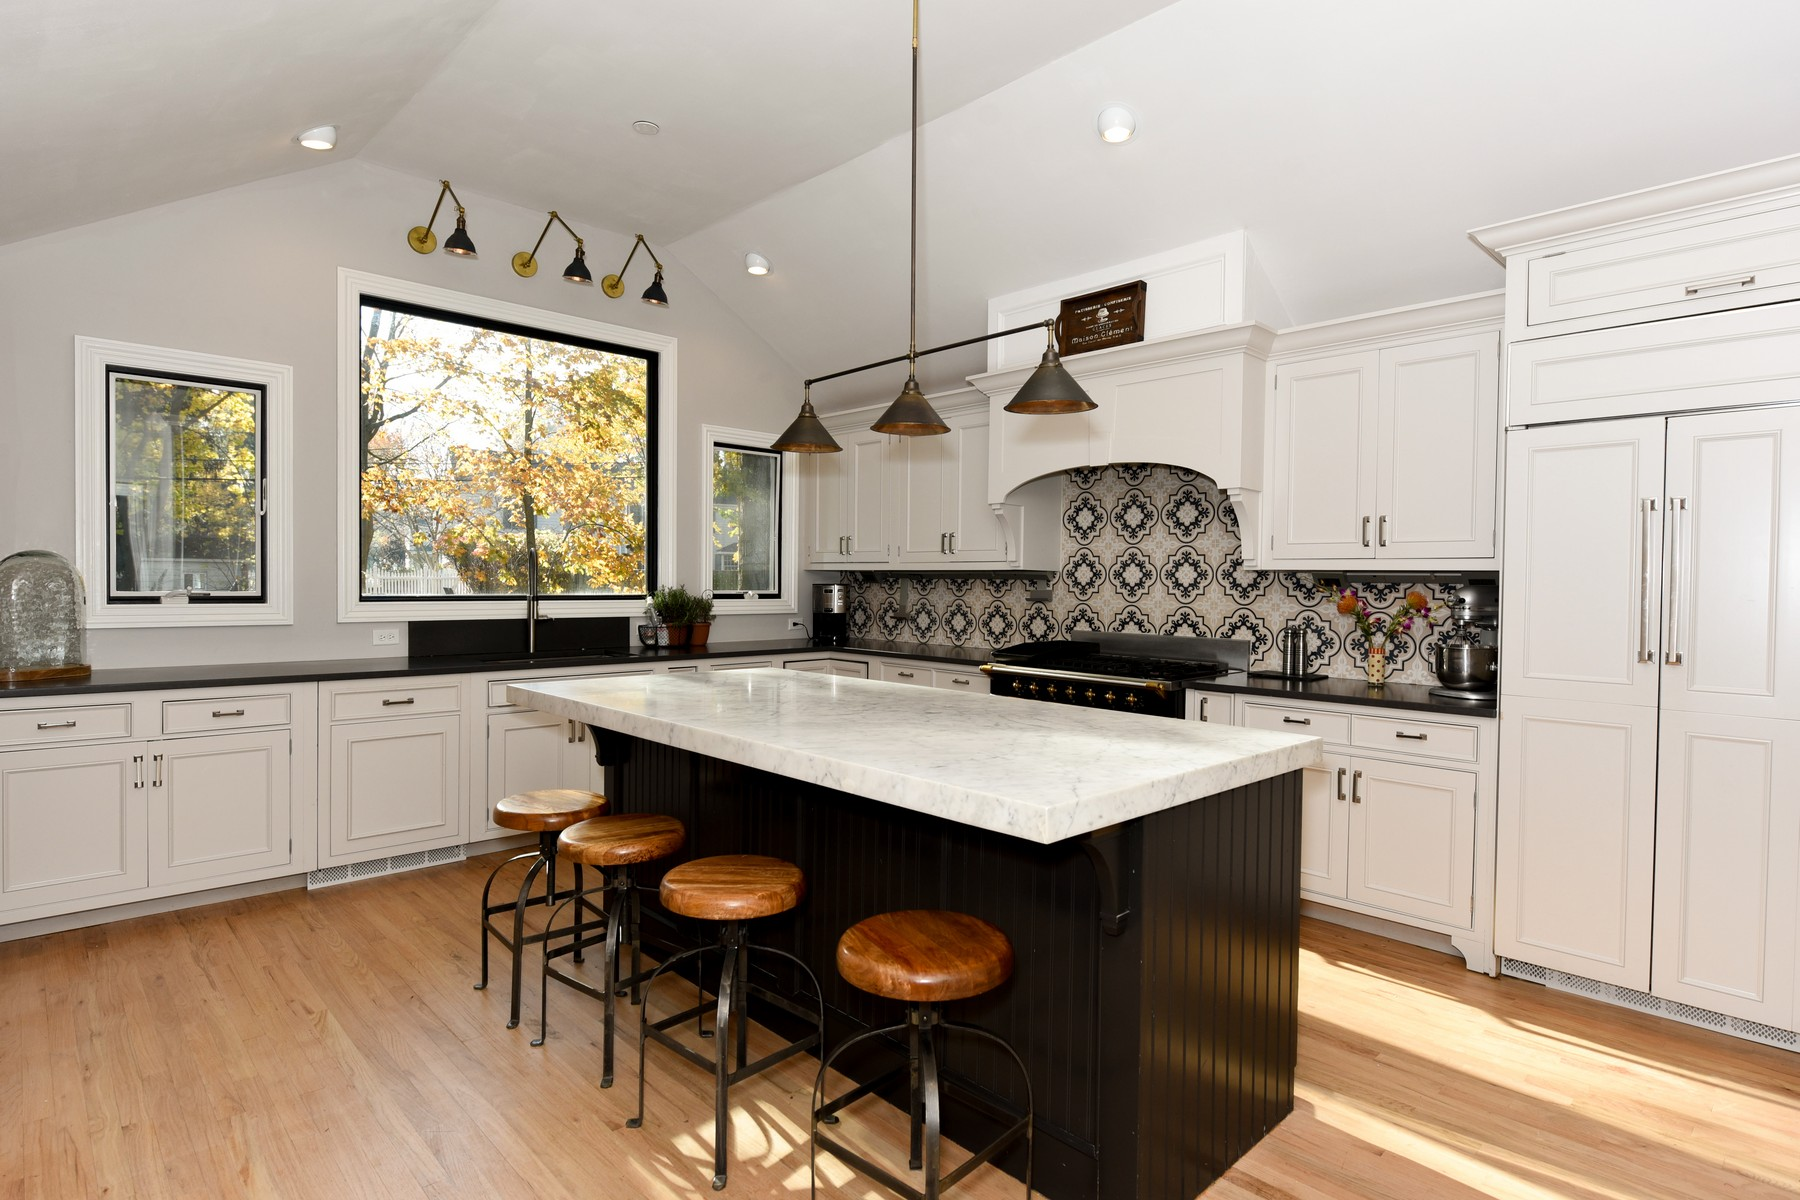 Single Family Home for Sale at Premier Rumson Location 9 Robin Rd Rumson, New Jersey, 07760 United States